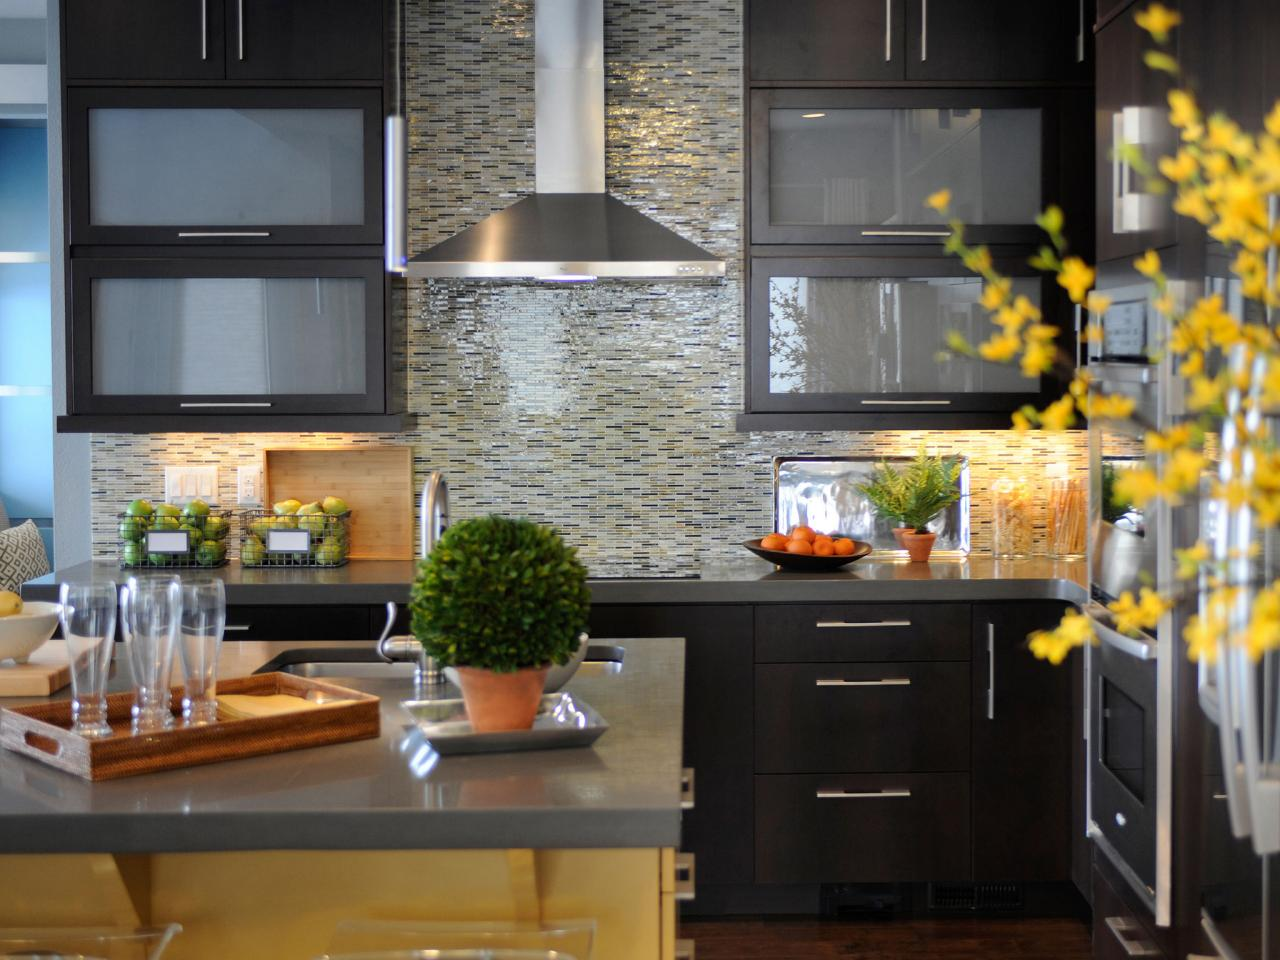 Elegant Design Of The Kitchen Areas With Black Wooden Cabinets And Grey Wall Tile Ideas